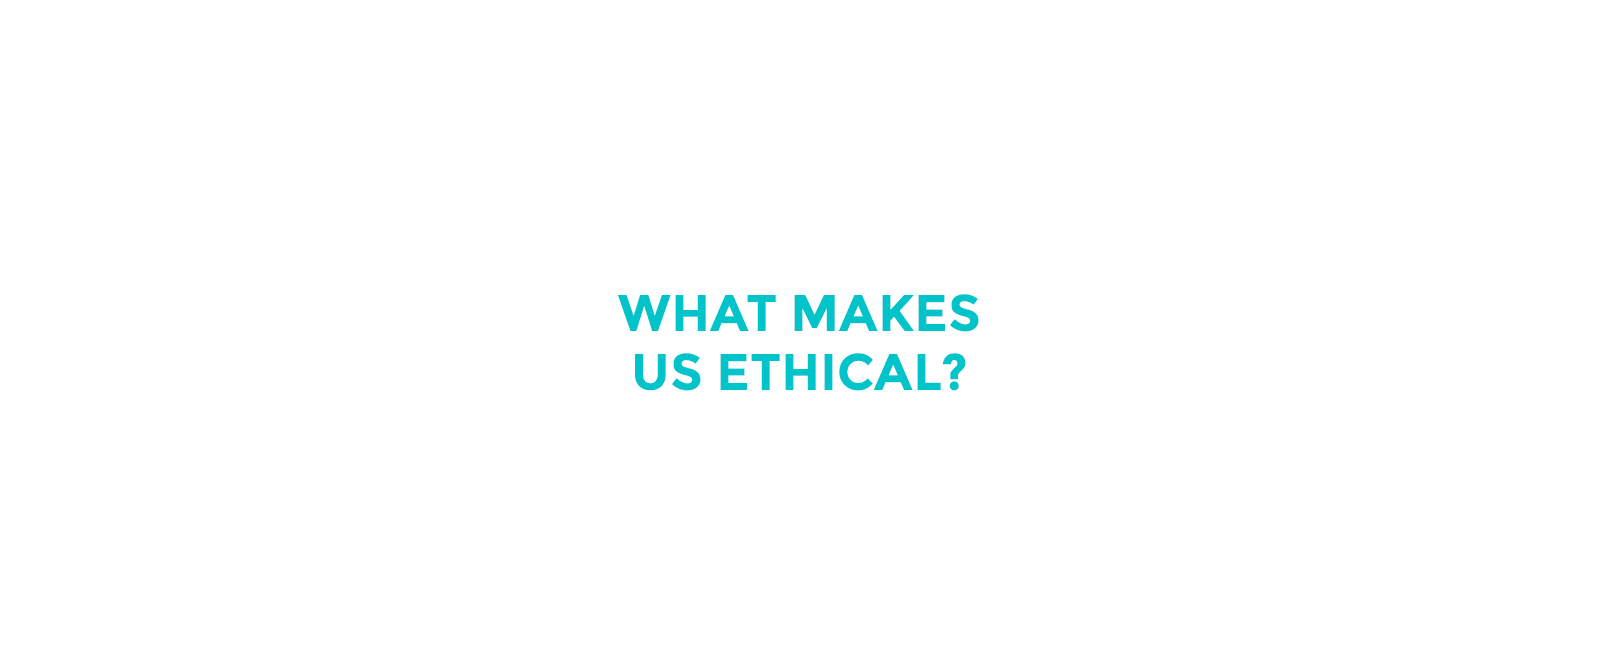 What makes us ethical?